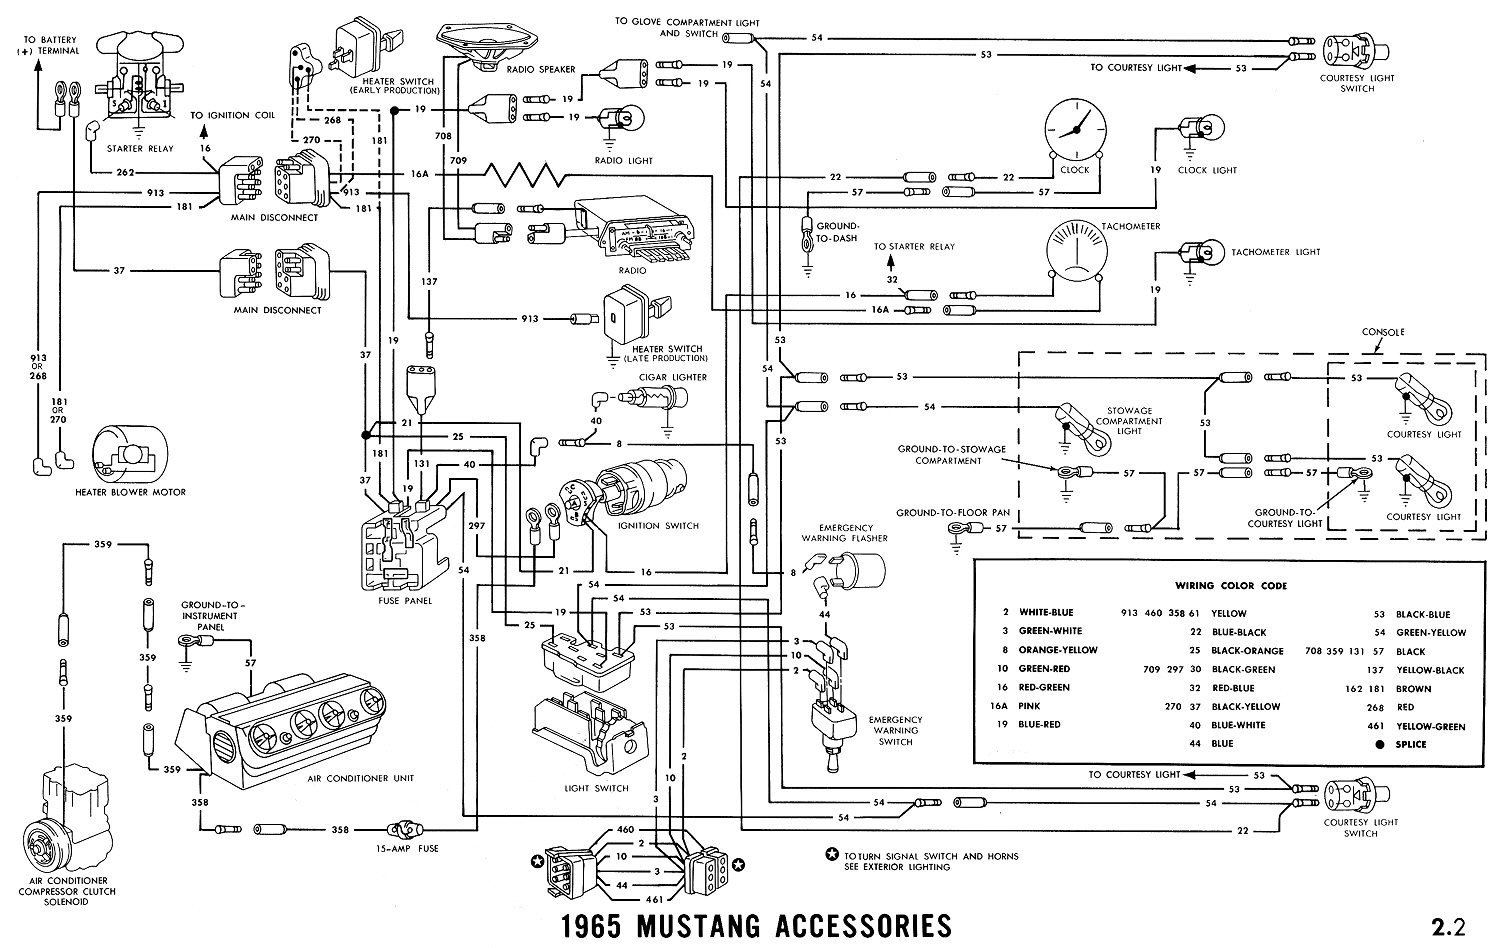 1965i 1965 mustang wiring diagrams average joe restoration mustang wiring harness diagram at aneh.co